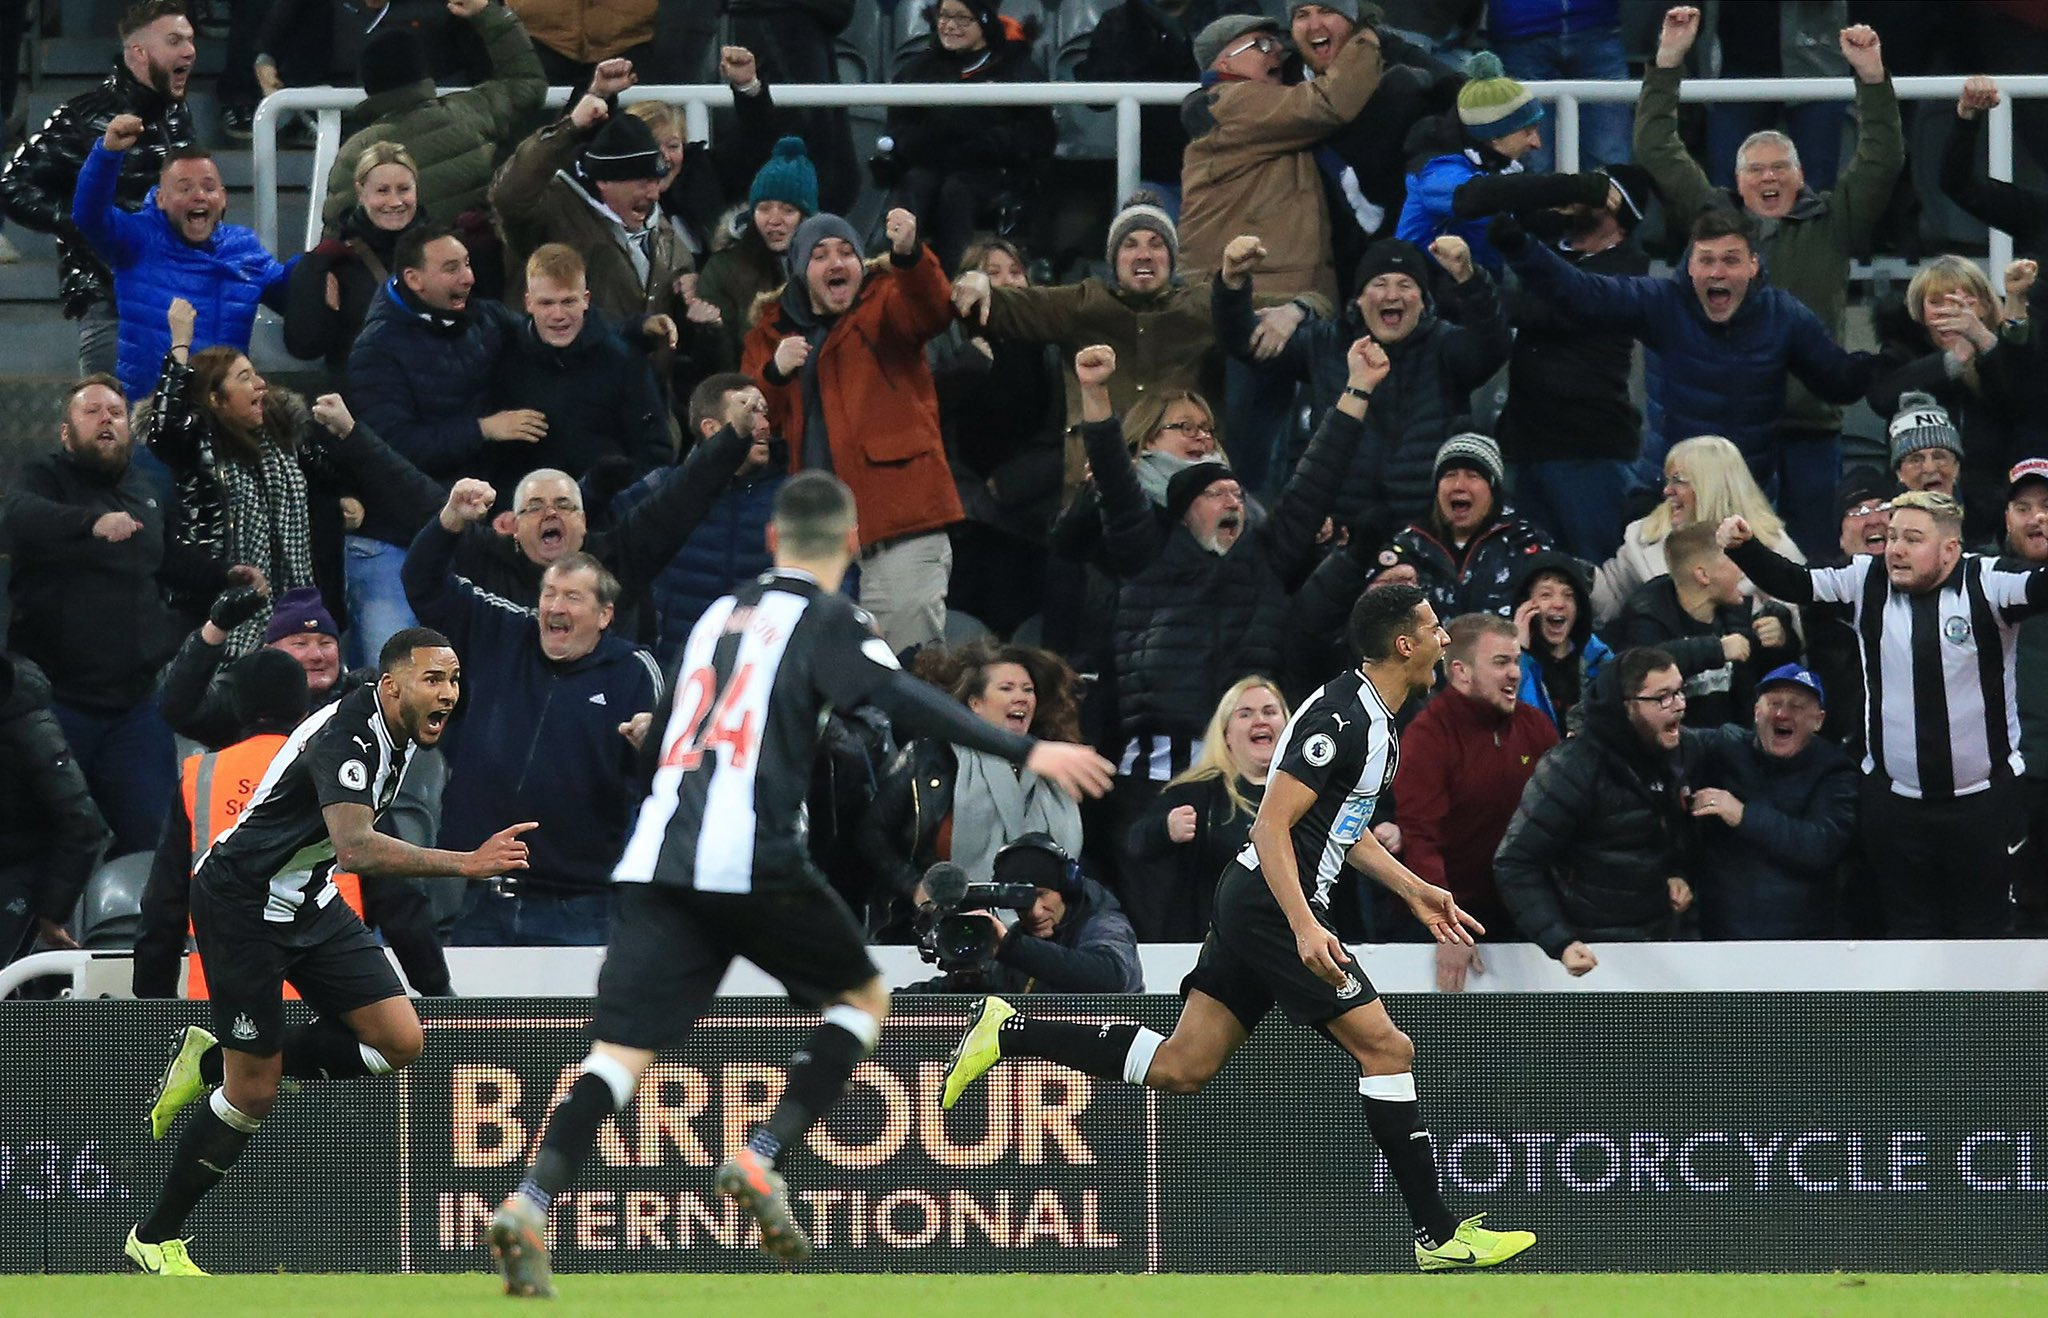 Isaac Hayden of Newcastle United celebrates after scoring a late winner against Chelsea on January 18, 2020 in Newcastle, England